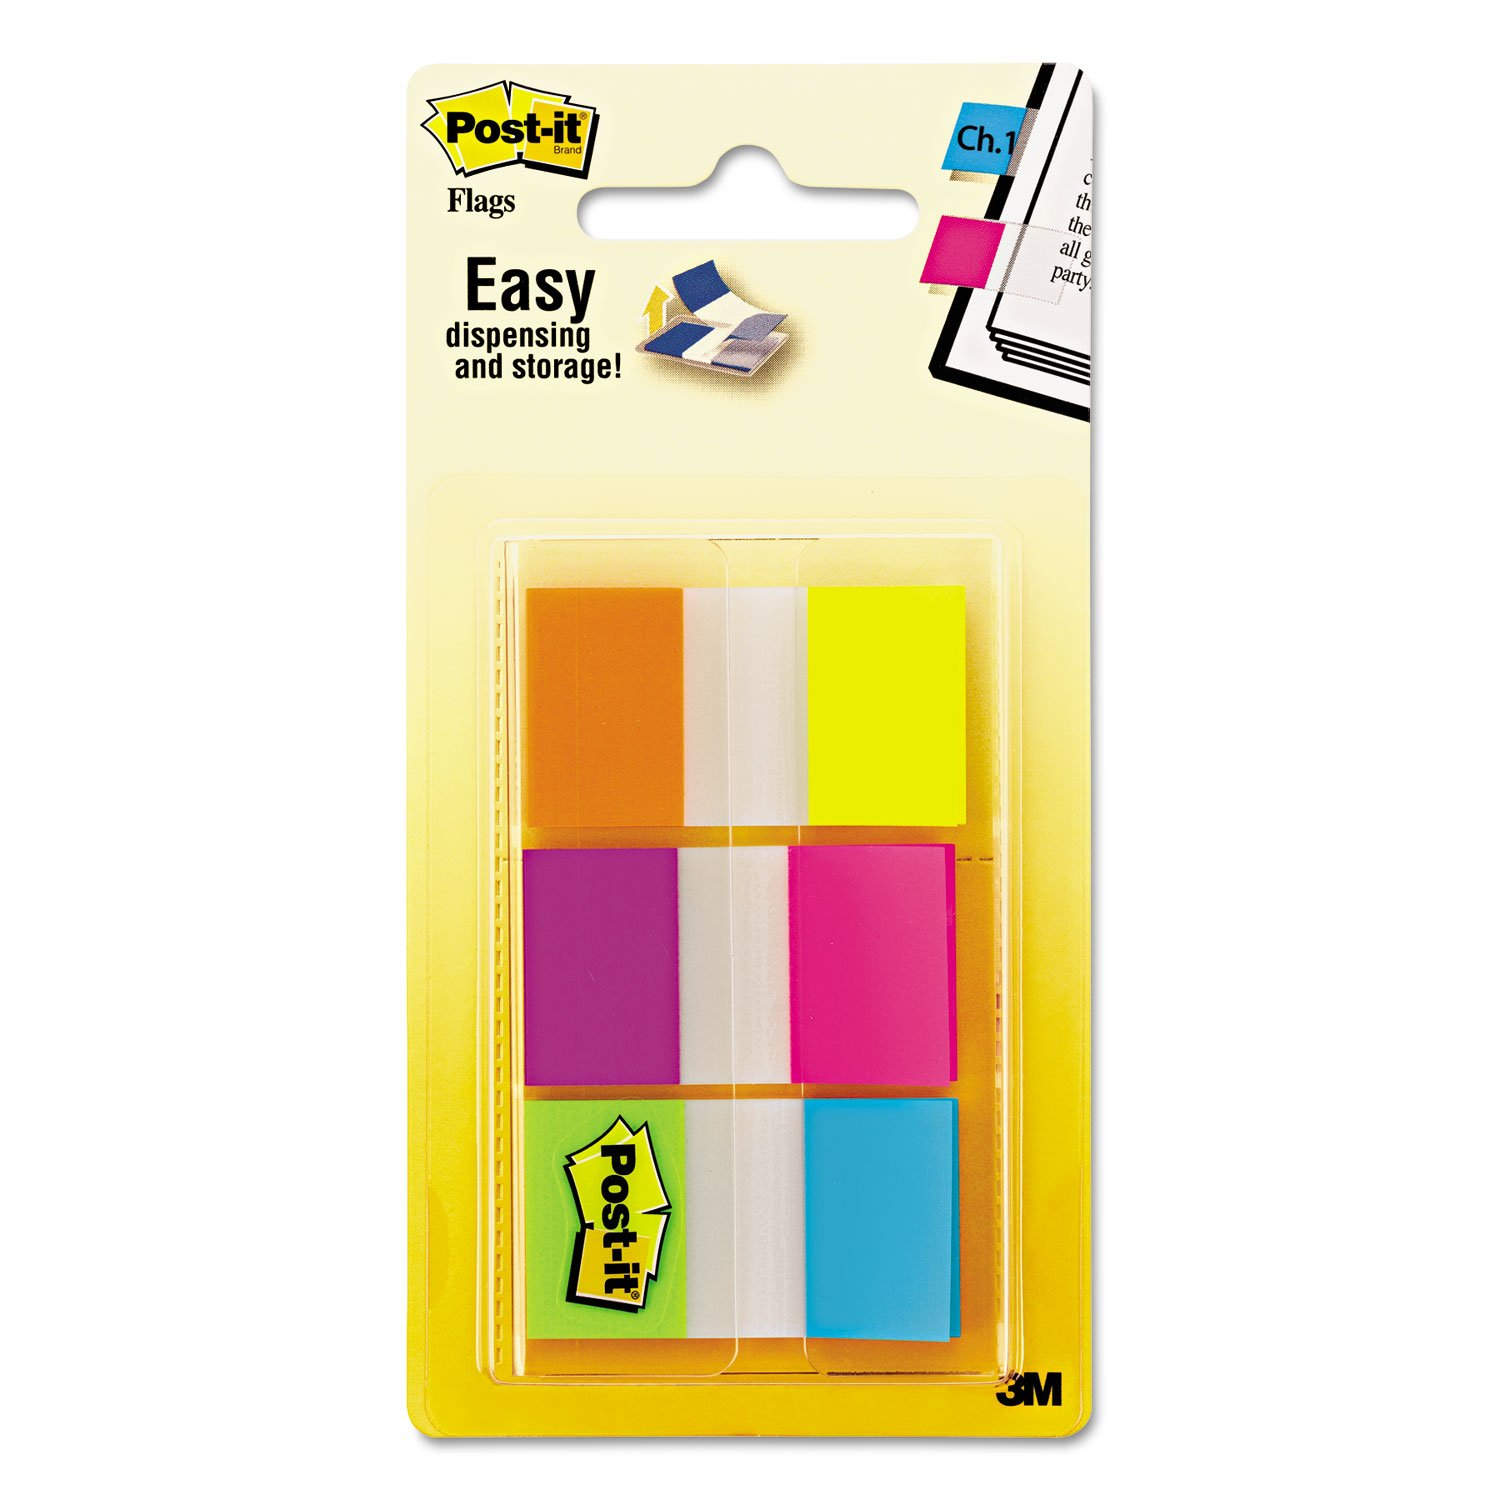 Post-it Flags (680-EG-ALT) 3M Office Products